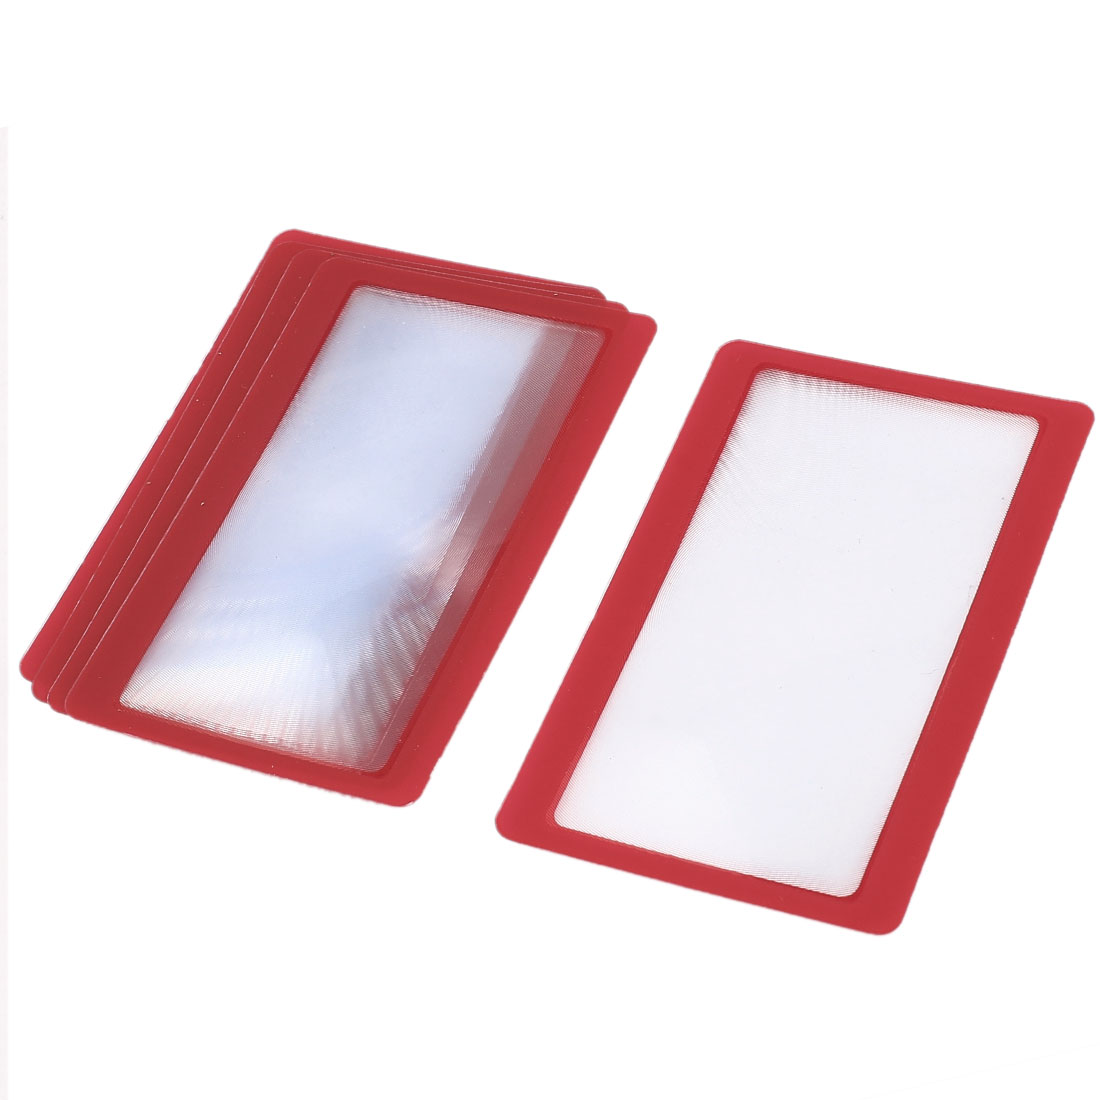 Unique Bargains 5 Pieces Red Frame Credit Card Reading Magnifier 3x Magnifying Wallet Loupe Lens